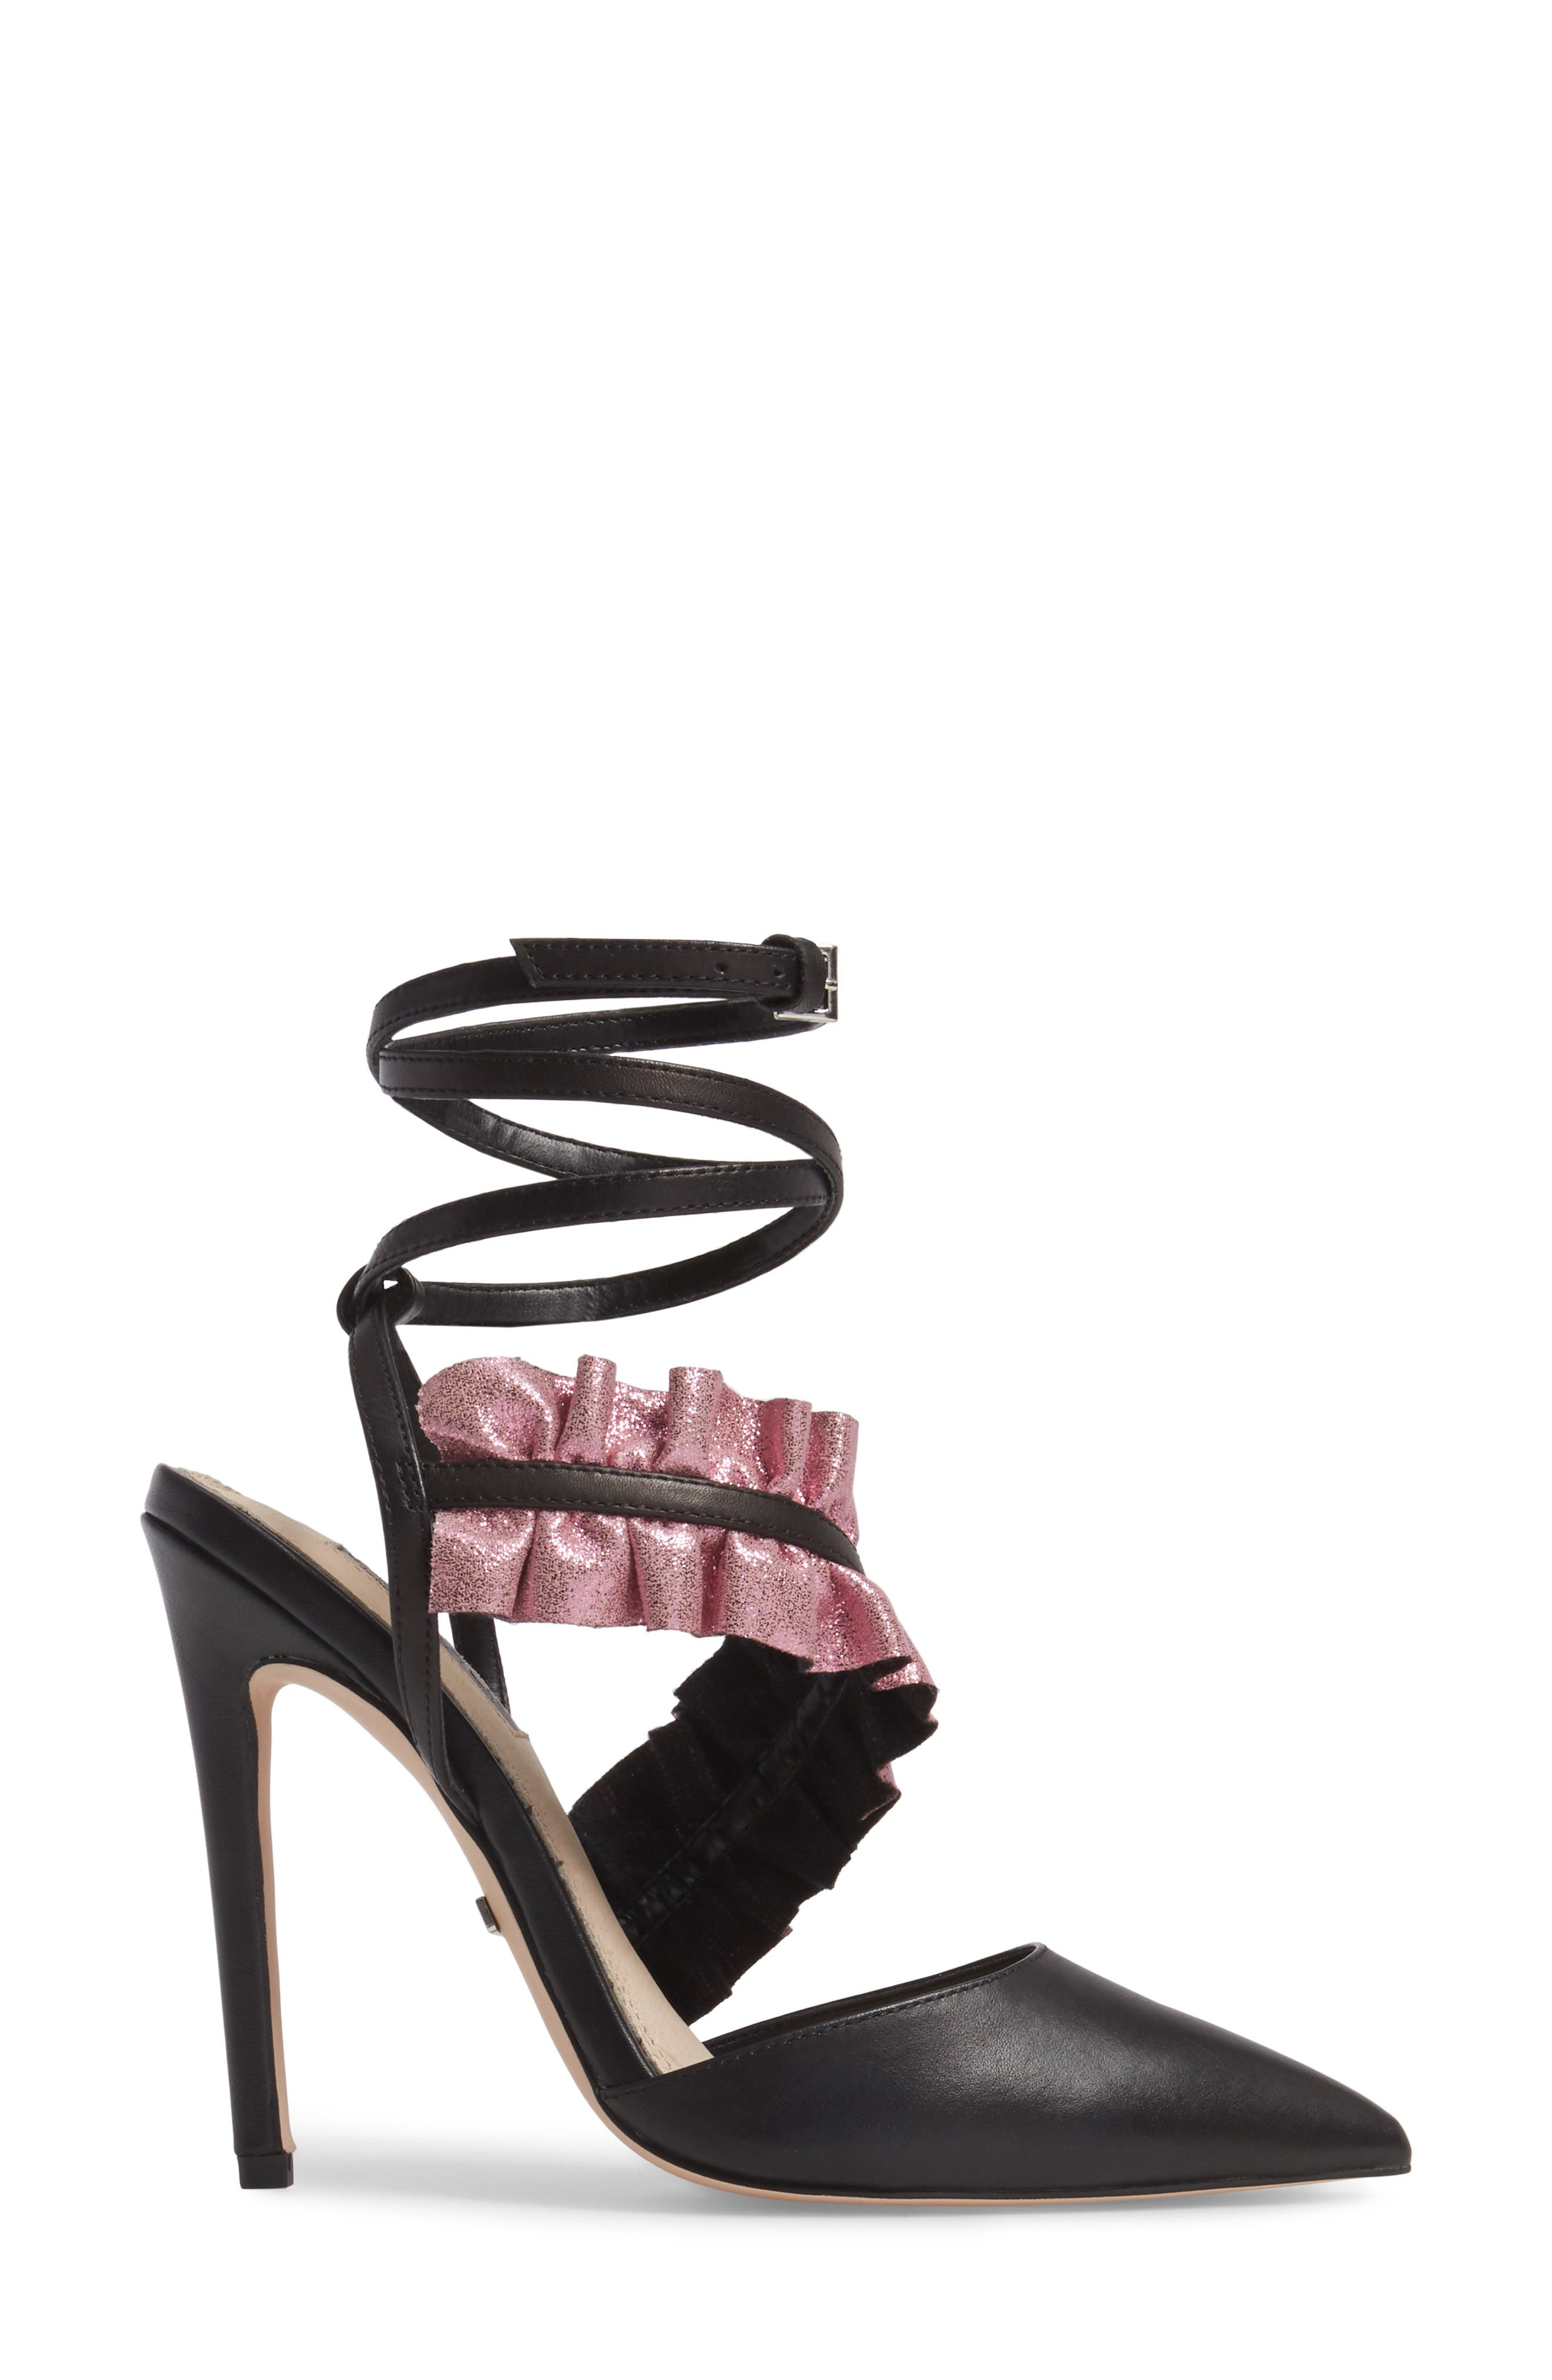 Grill Frill Ankle Strap Pump,                             Alternate thumbnail 3, color,                             001